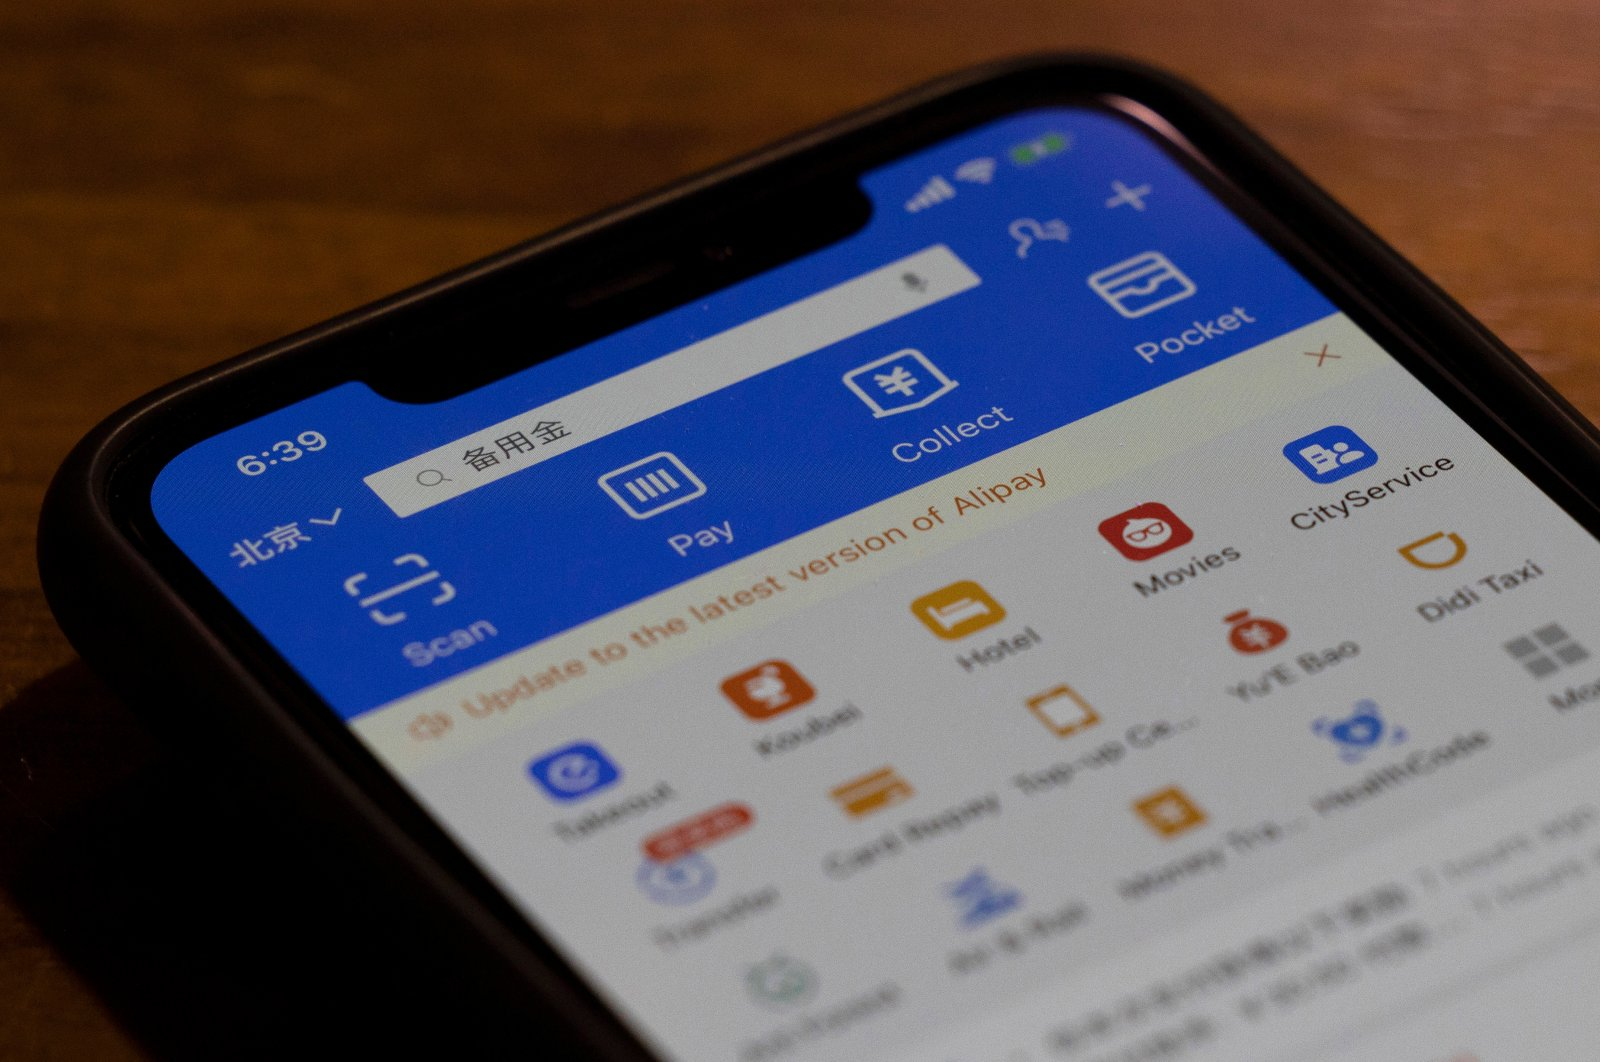 The app for Alipay, the mobile payments service operated by Ant Group, is seen on a smartphone in Beijing on July 20, 2020. (AP Photo)